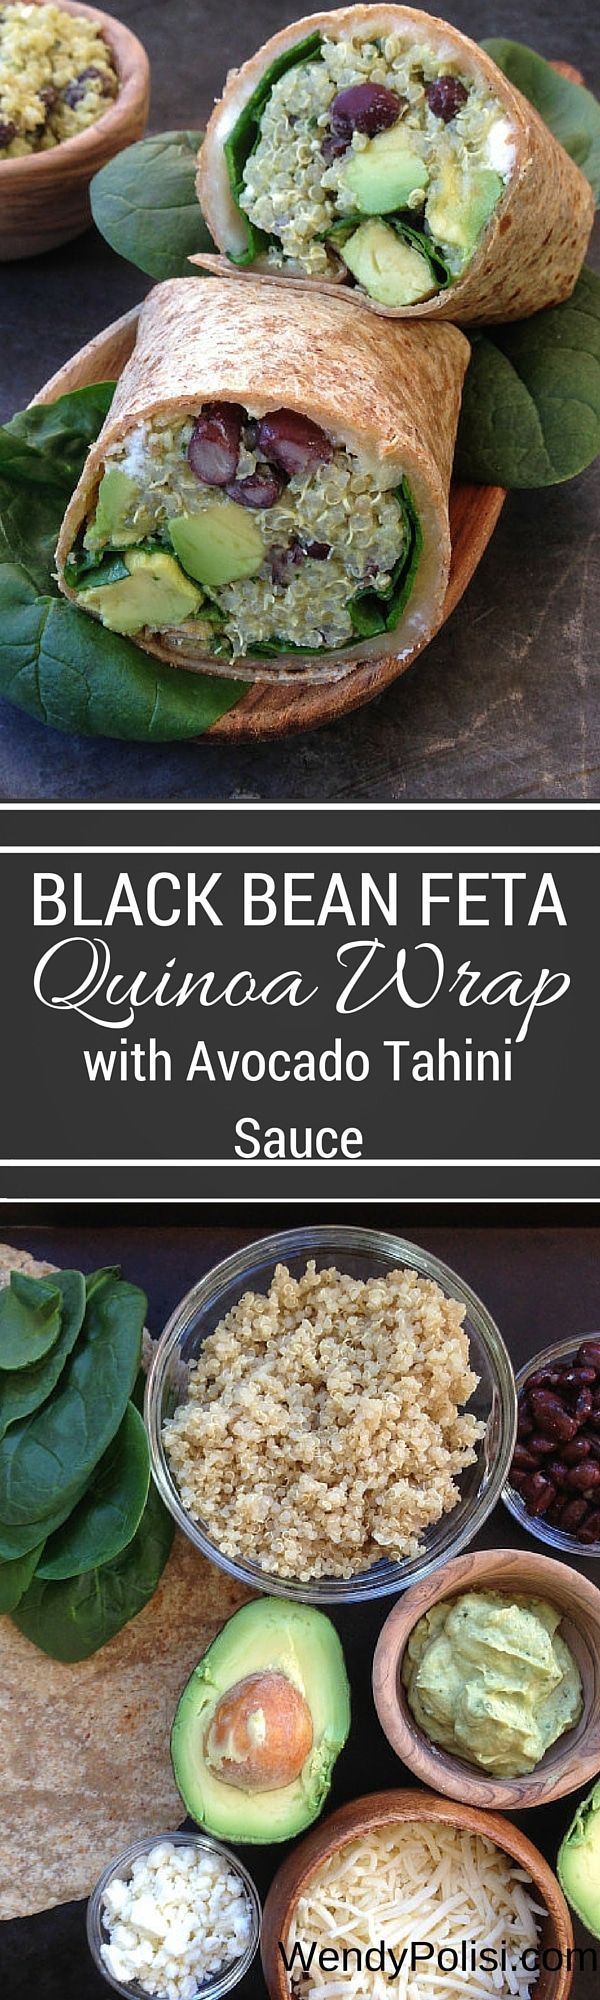 This healthy Veggie Quinoa Wrap with Black Beans and Avocado makes a great gluten free lunch and is